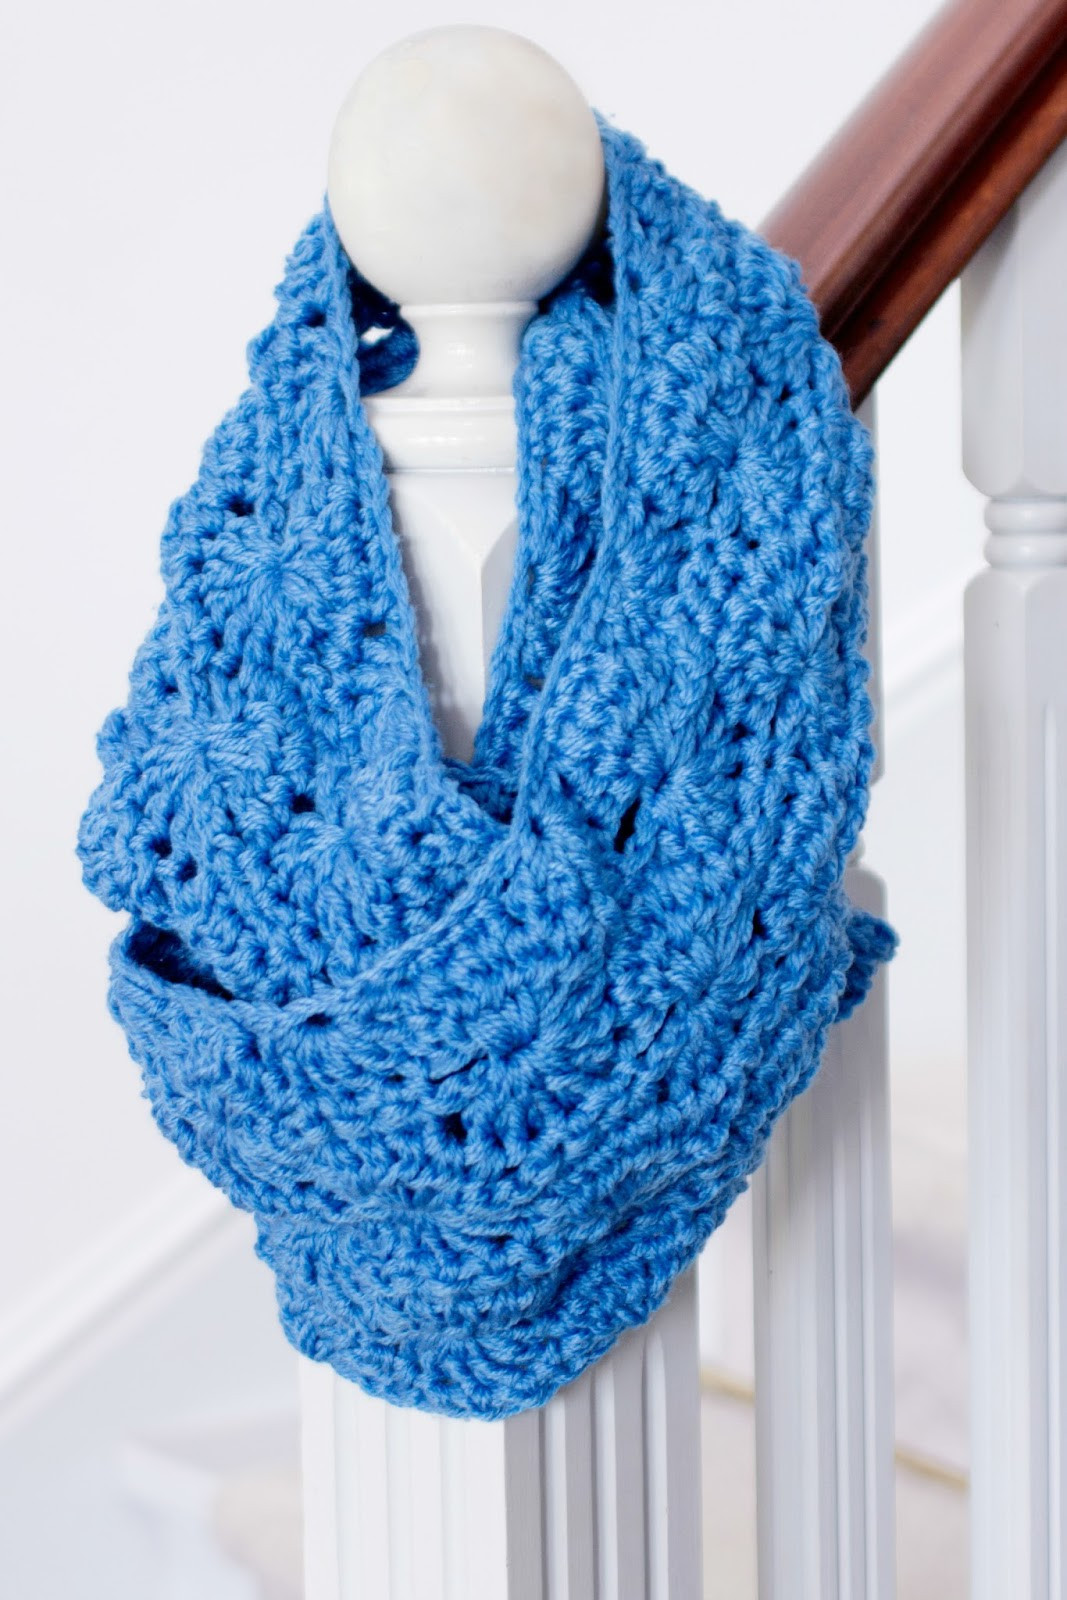 Crochet Scarf New 30 Fabulous and Free Crochet Scarf Patterns Of Incredible 48 Images Crochet Scarf